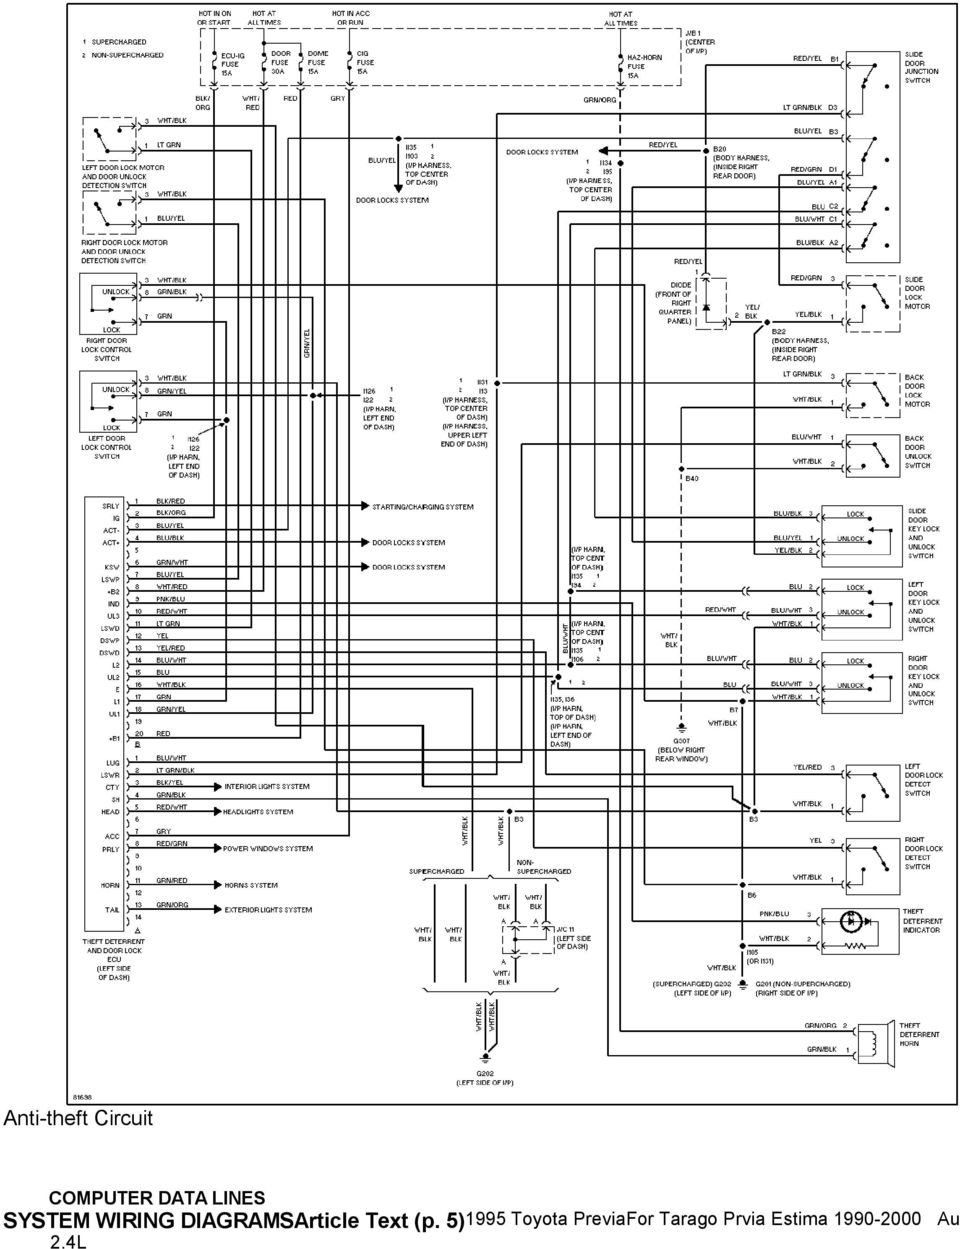 Toyota Lucida Fuse Box Translation : Toyota estima wiring diagram and schematics